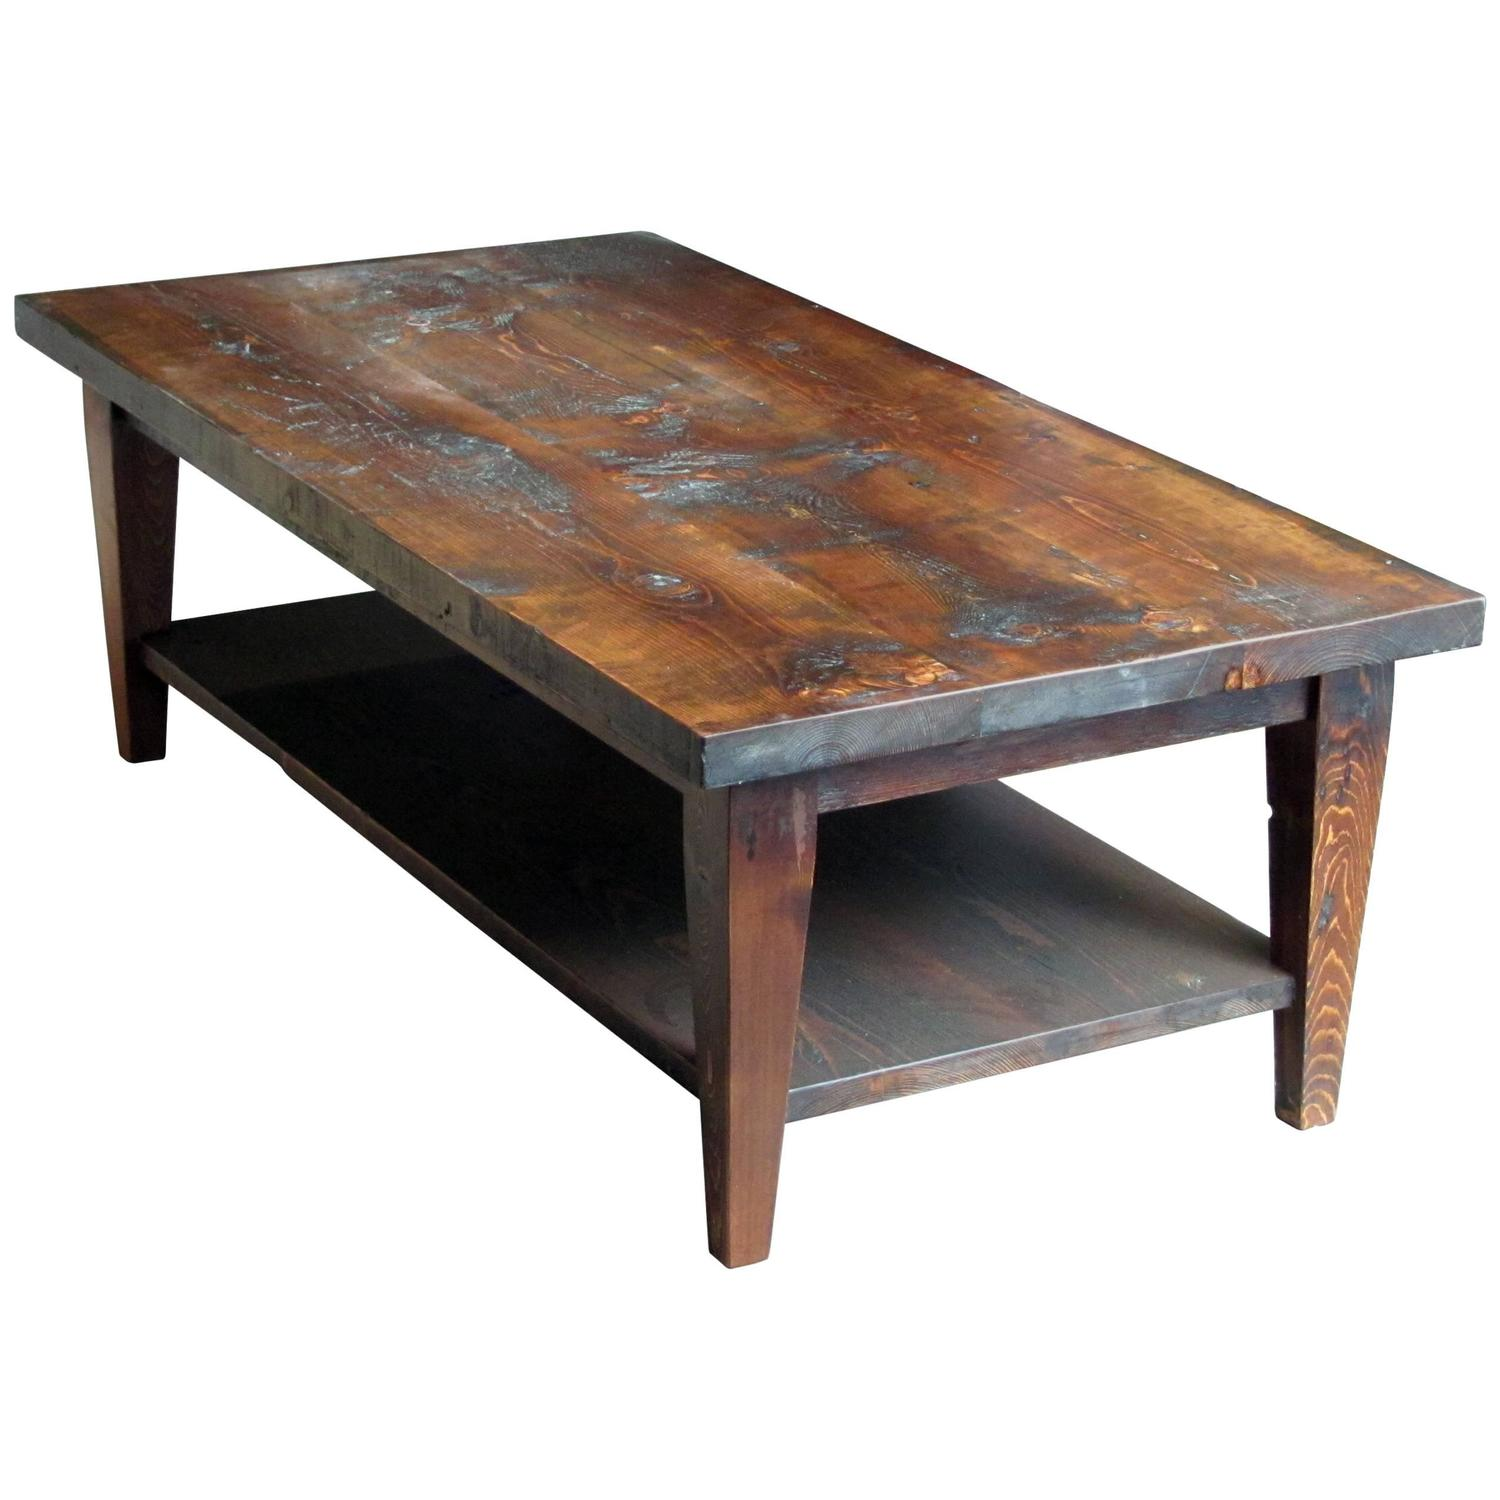 Reclaimed Semi Rustic Pine Coffee Table With Bottom Shelf